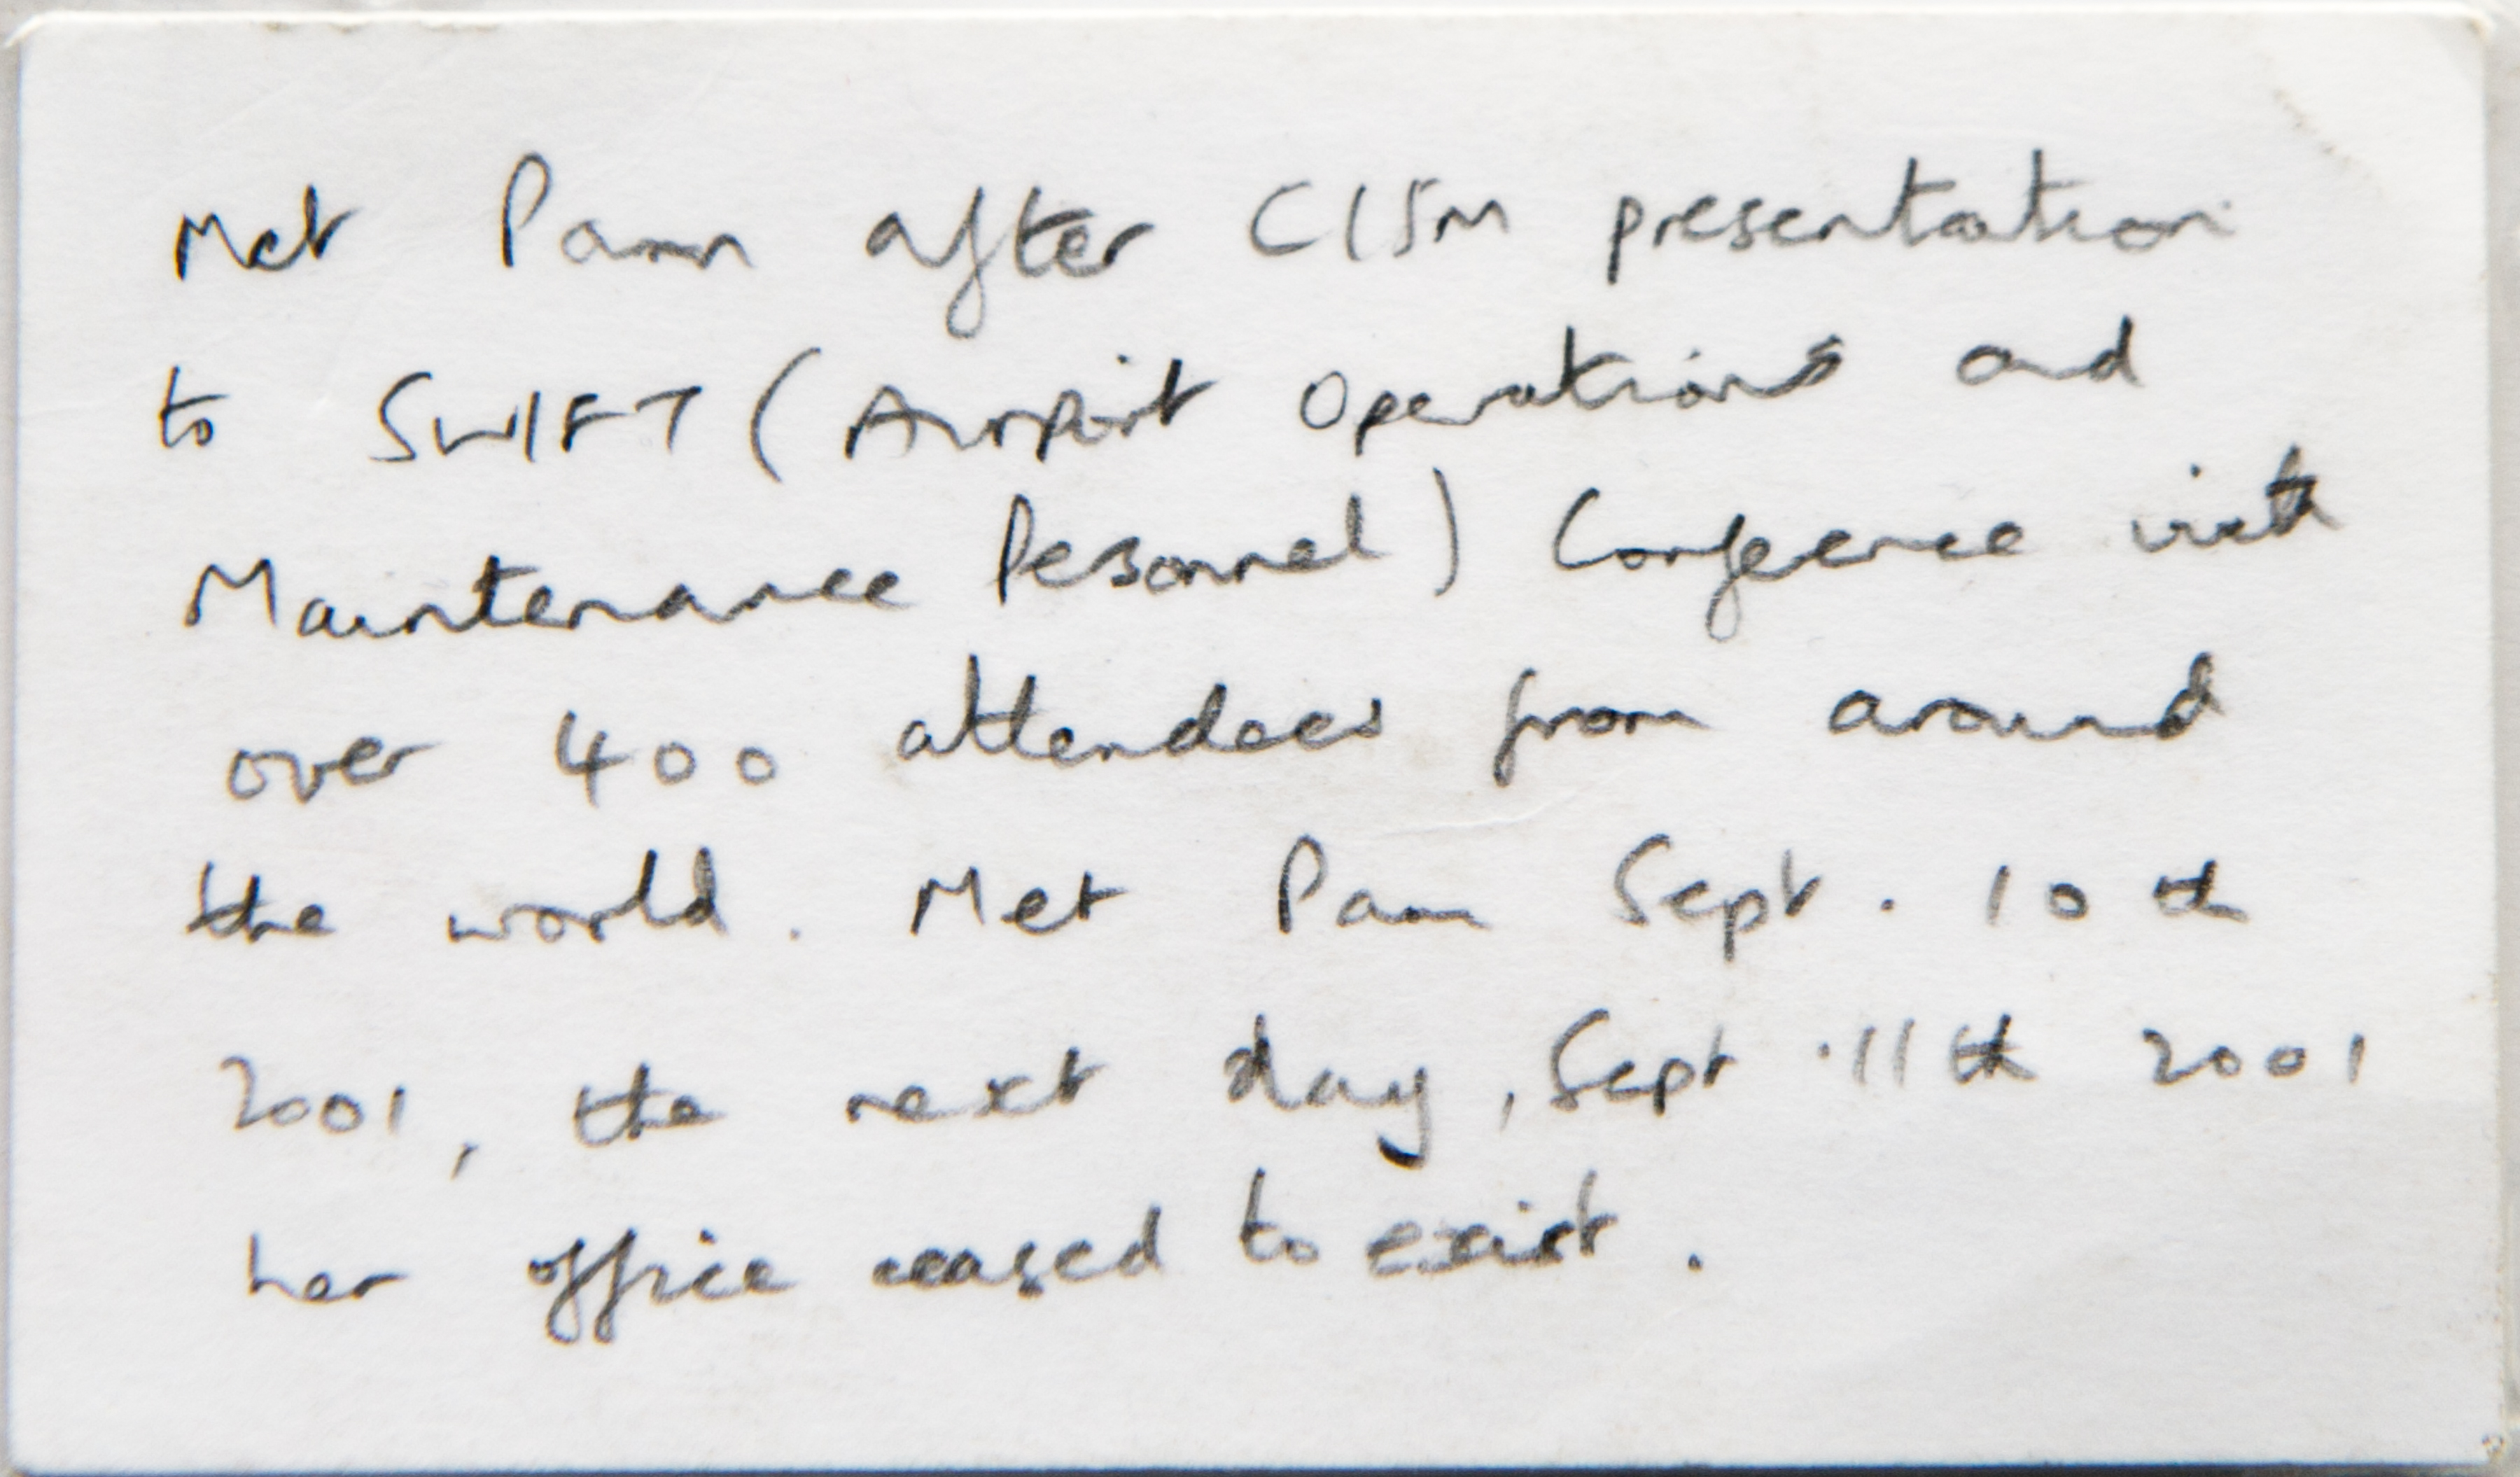 In handwriting the back of a business card reads: Met Pam after CISM presentation to SWIFT (Airport Operations and Maintenance Personnel) conference with over 400 attendees from around the world. Met Pam September 10th 2001. the next day, Sept 11th 2001, her office ceased to exist